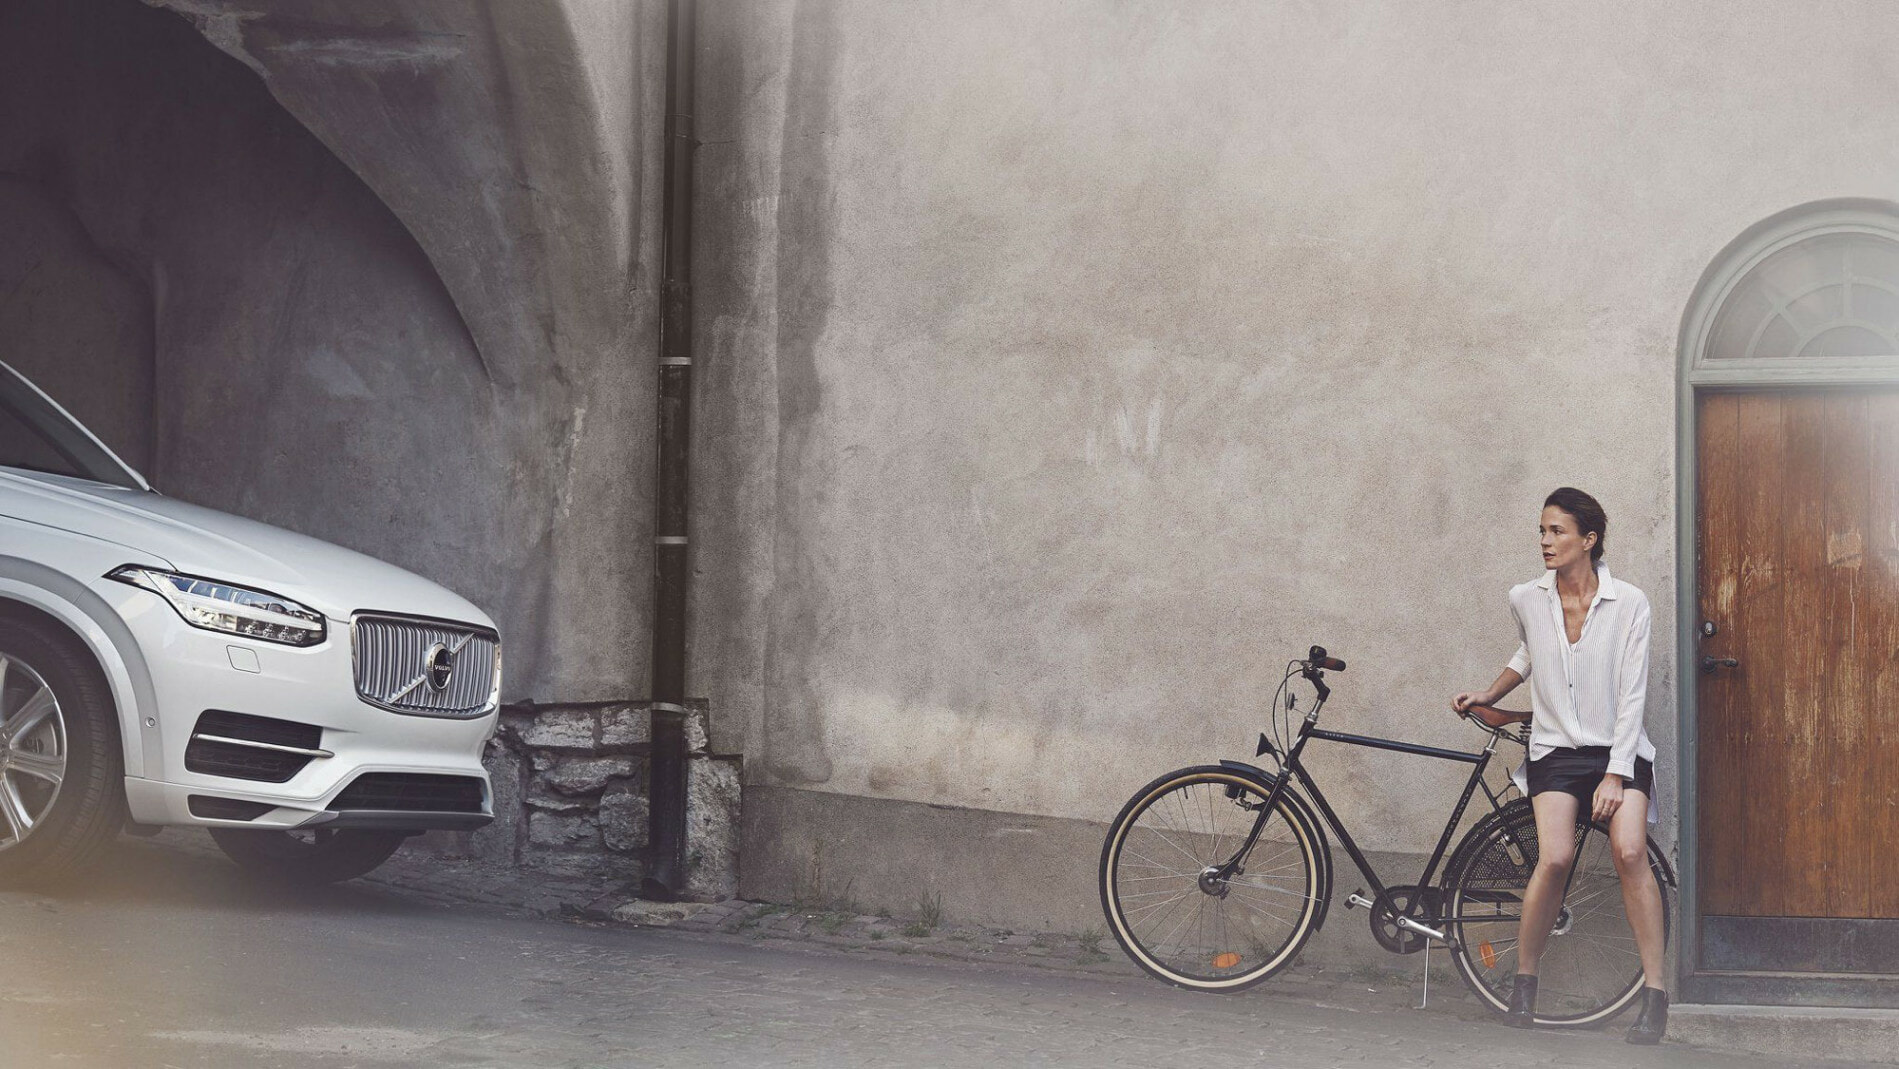 Woman sitting on a back of bicycle watching white Volvo car going by